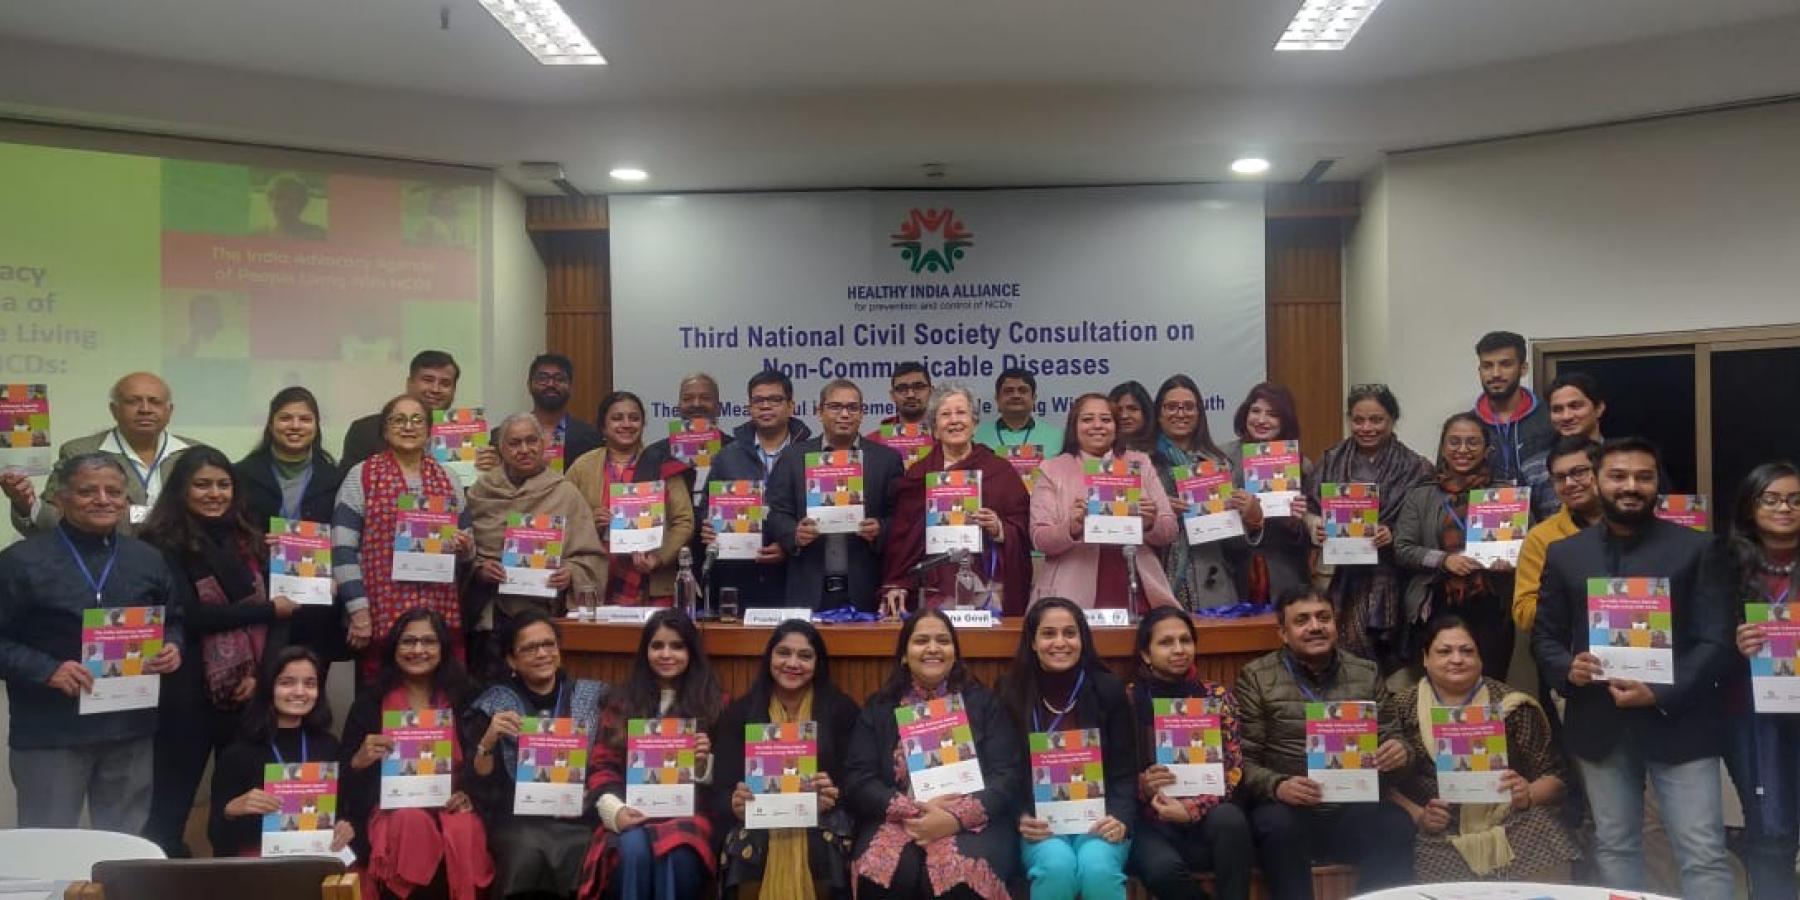 Launch of the India Advocacy Agenda of People Living with NCDs at the Third National Civil Society Consultation convened by the Healthy India Alliance on 27 December 2019 in New Delhi, India